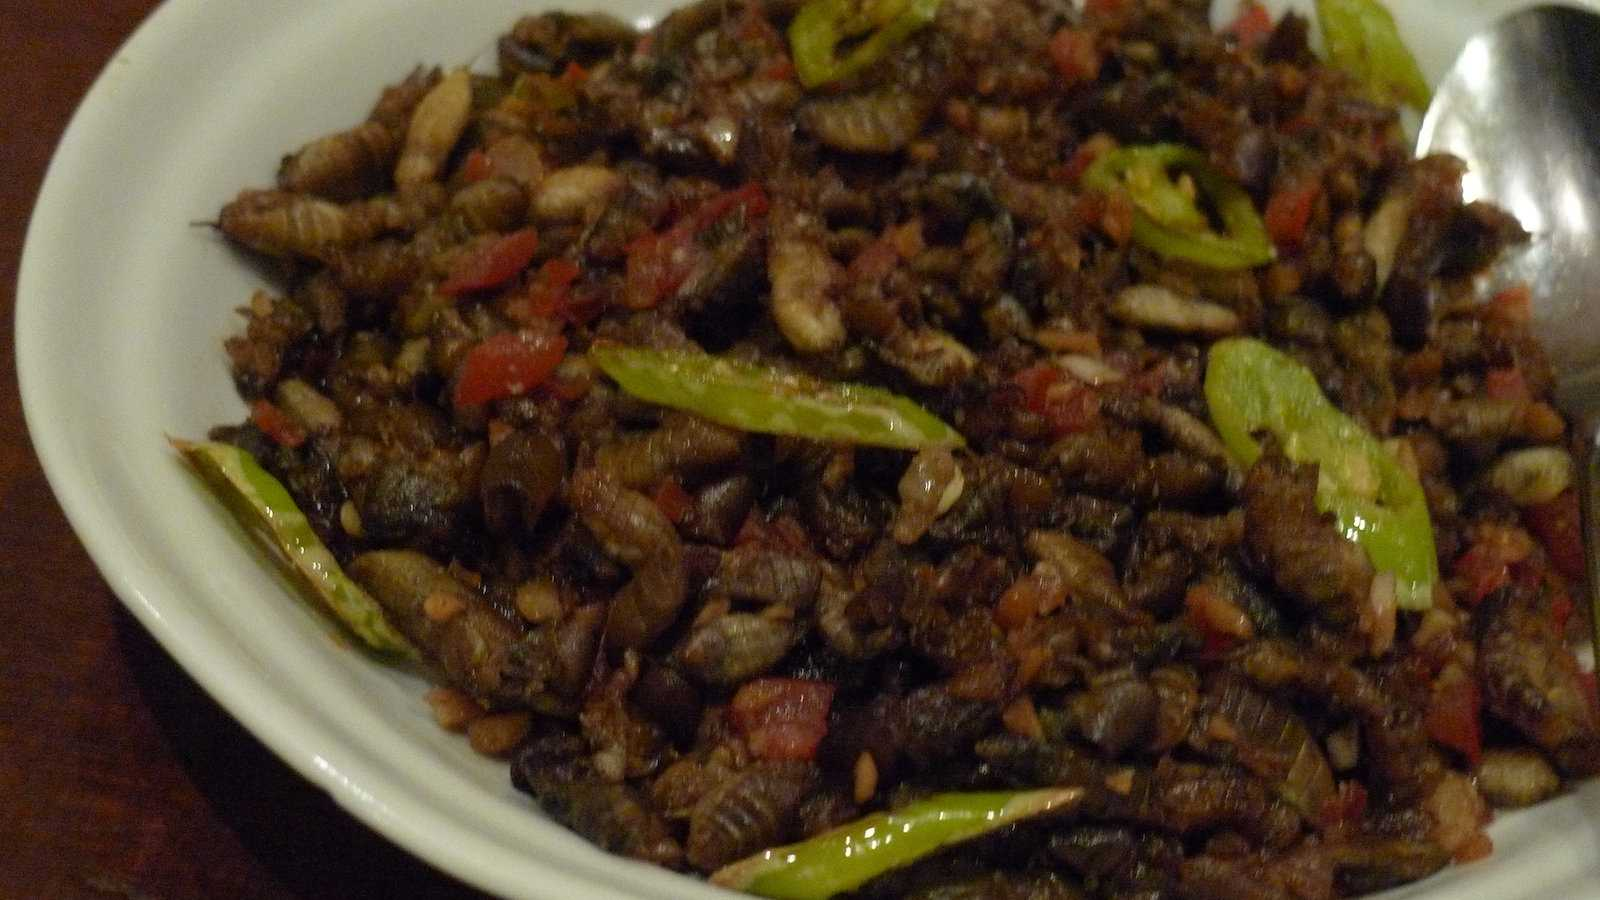 In some parts of the Philippines, crickets are a popular dish as they're cheap and packed with protein